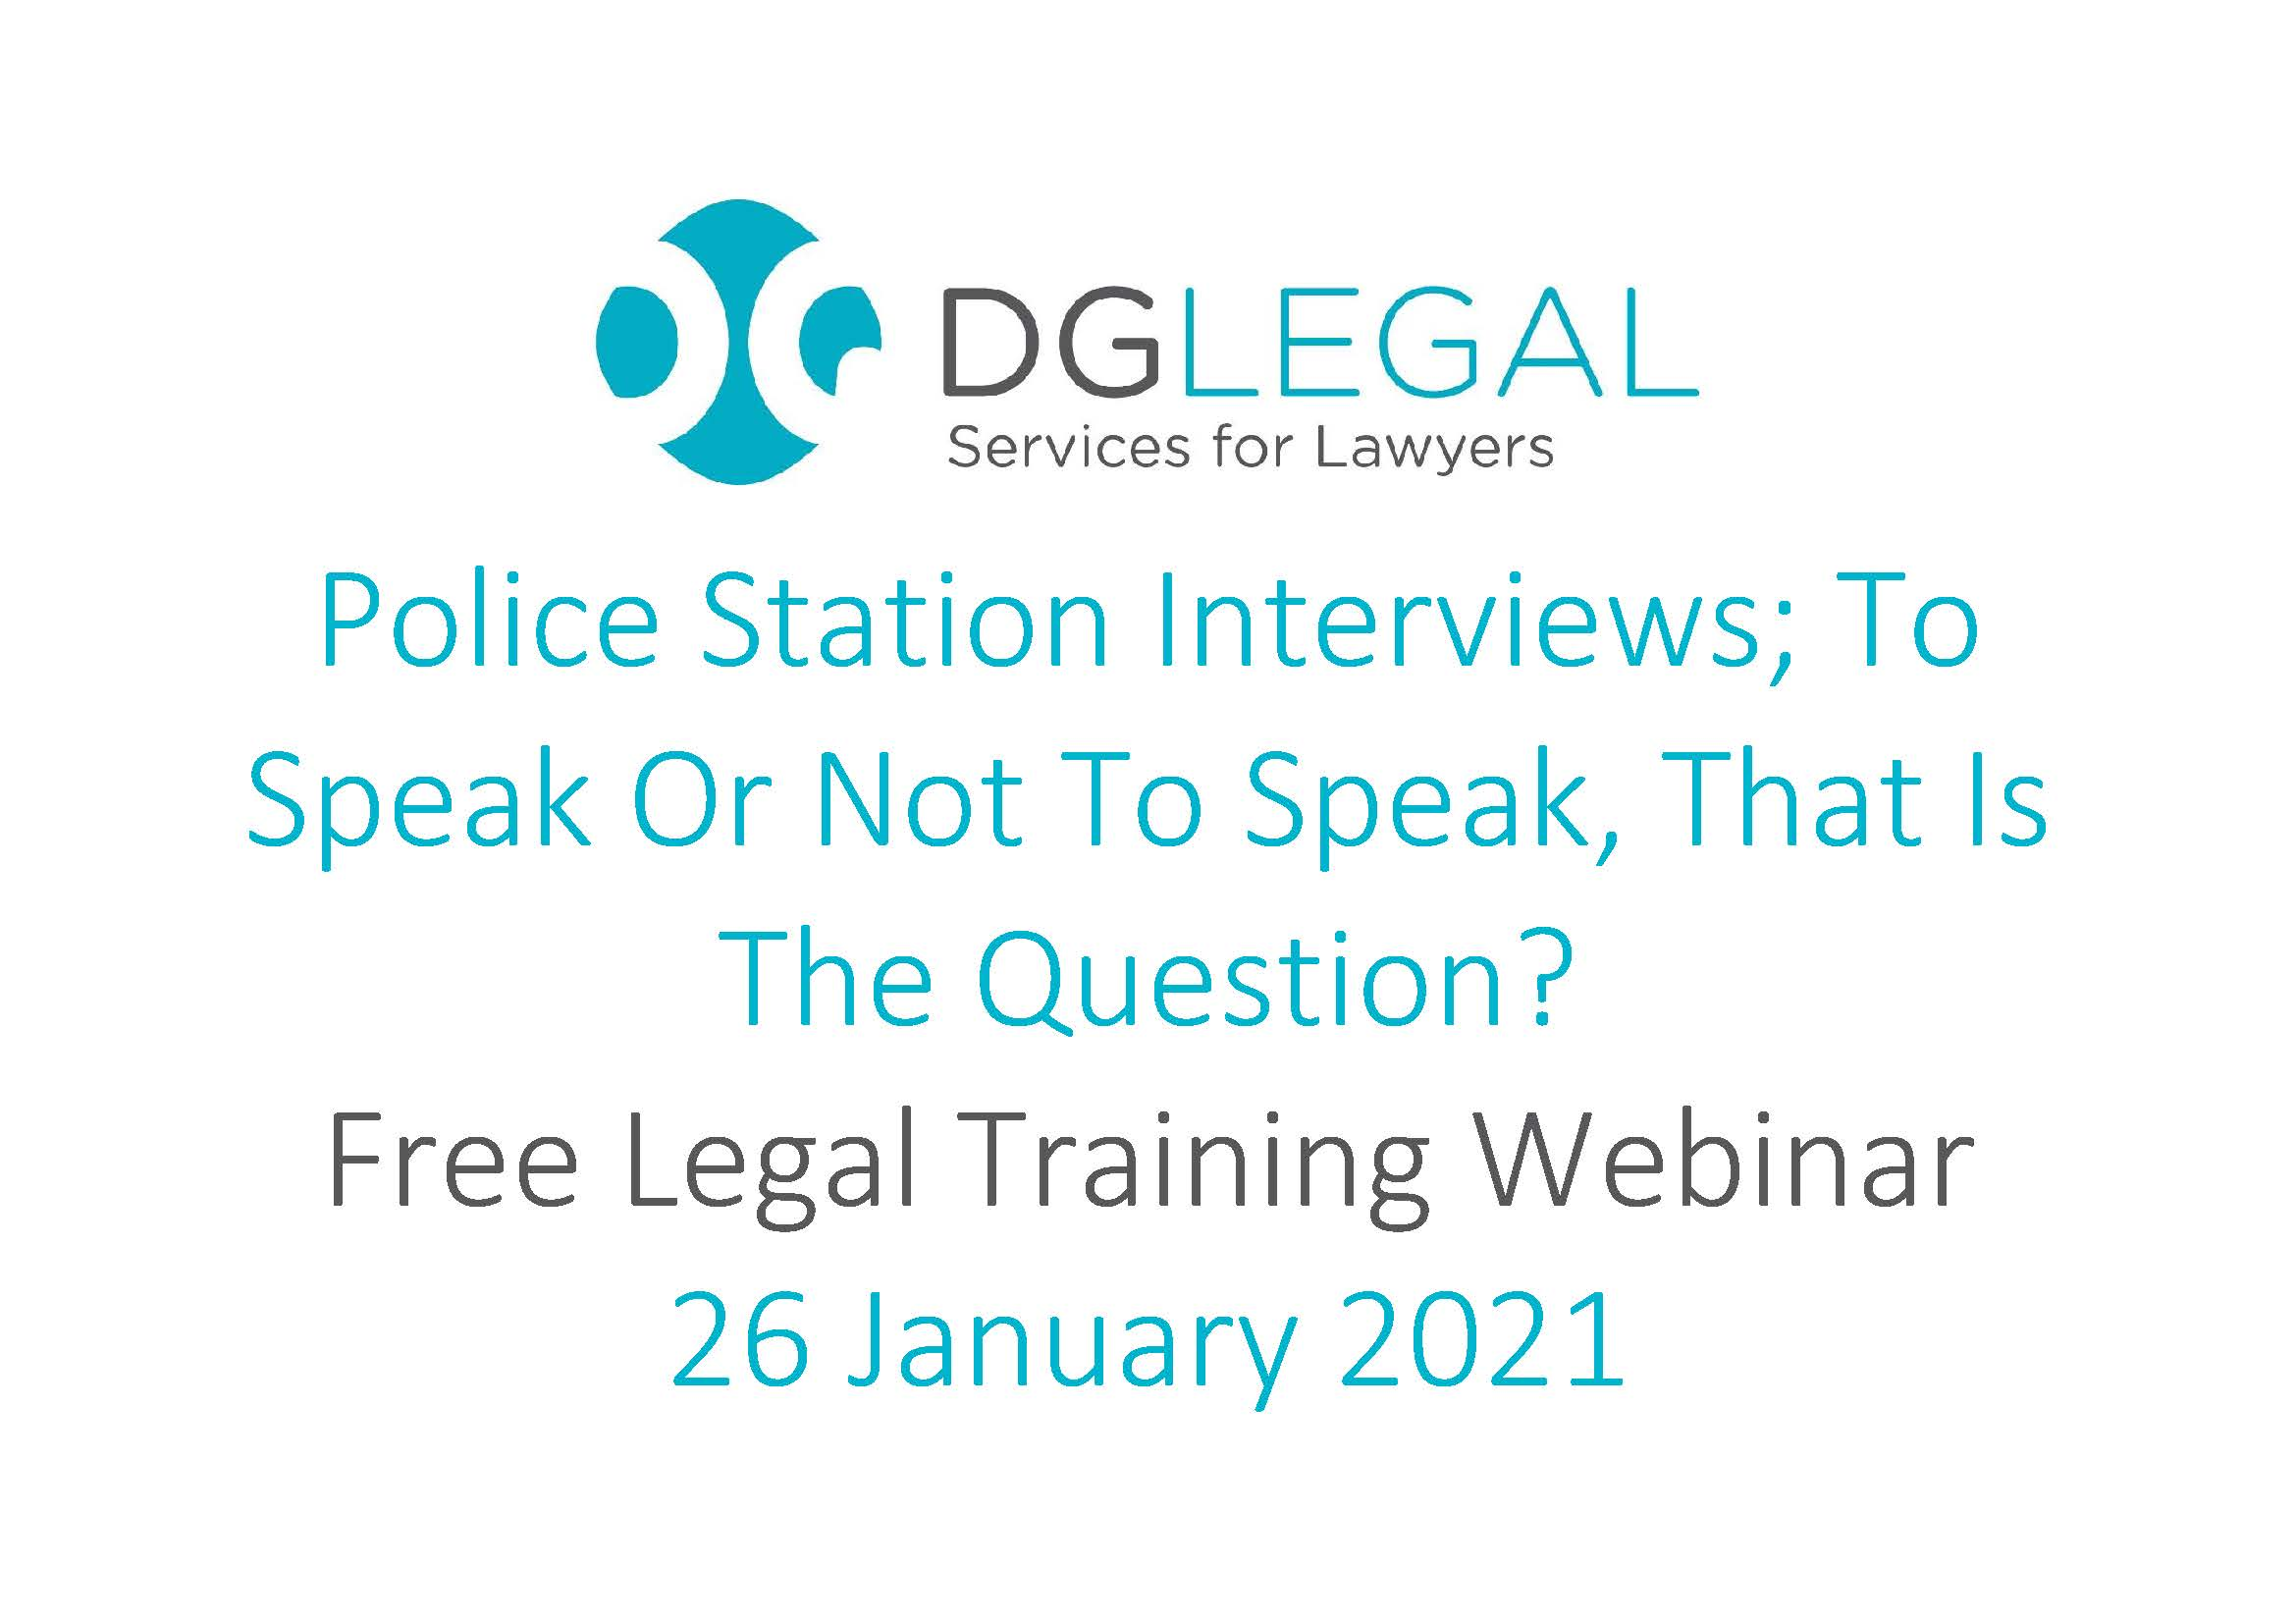 Police Station Interviews - To speak or not to speak, that is the question